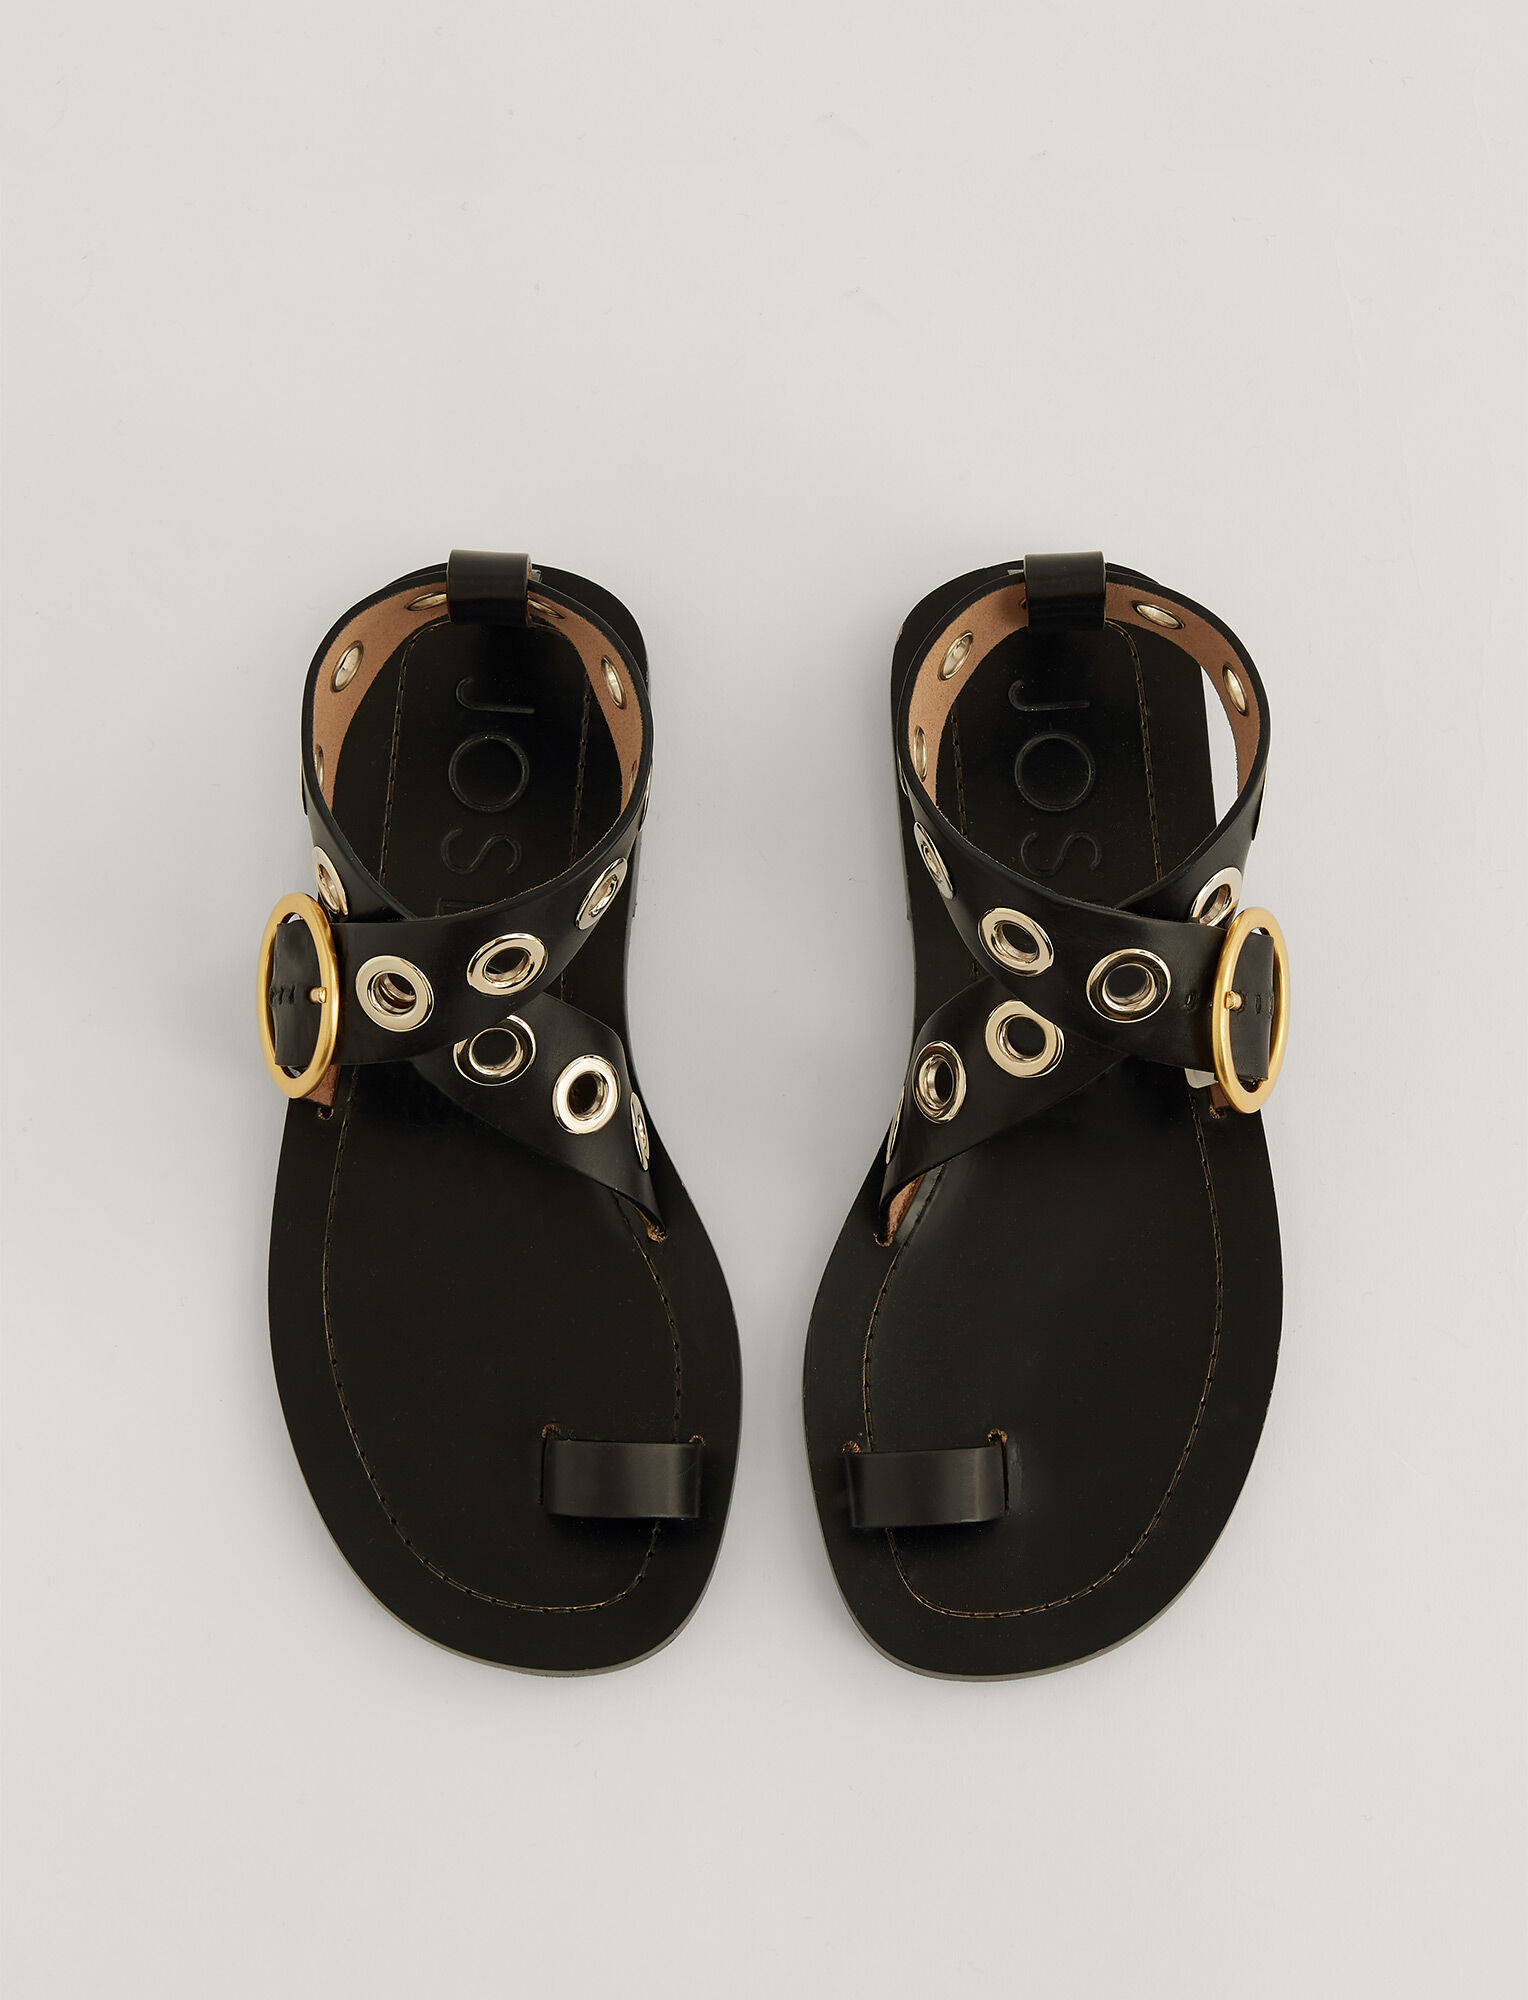 Joseph, Gava Leather Sandal, in BLACK